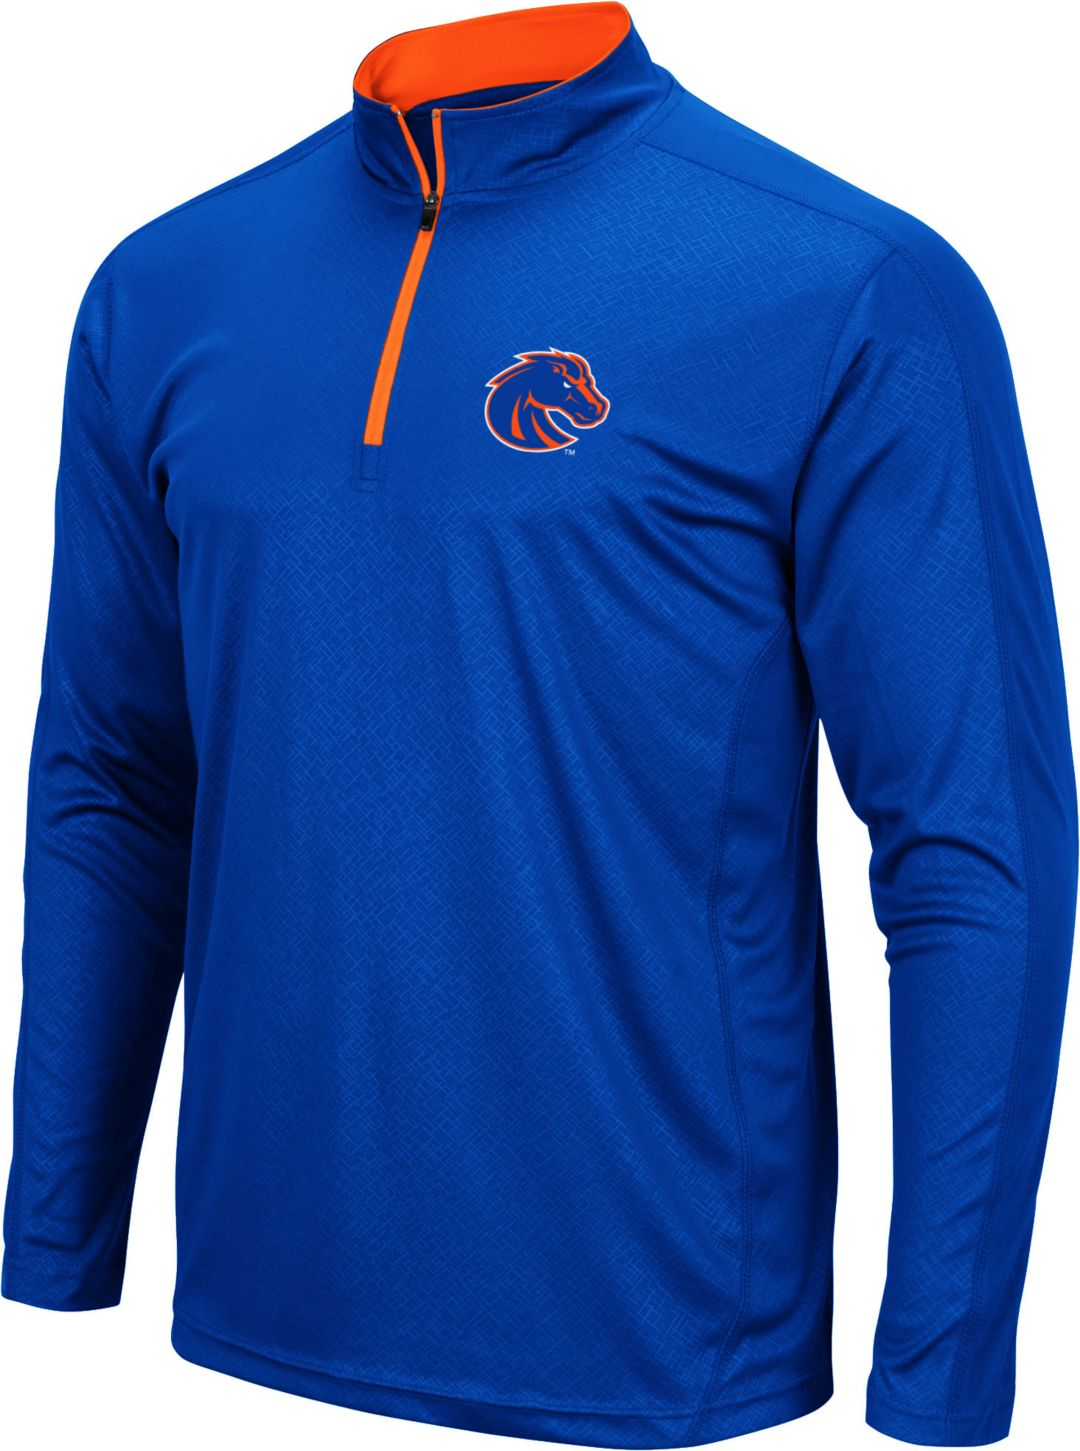 newest 38529 8ad97 Colosseum Men's Boise State Broncos Blue Loggerhead Quarter-Zip Shirt